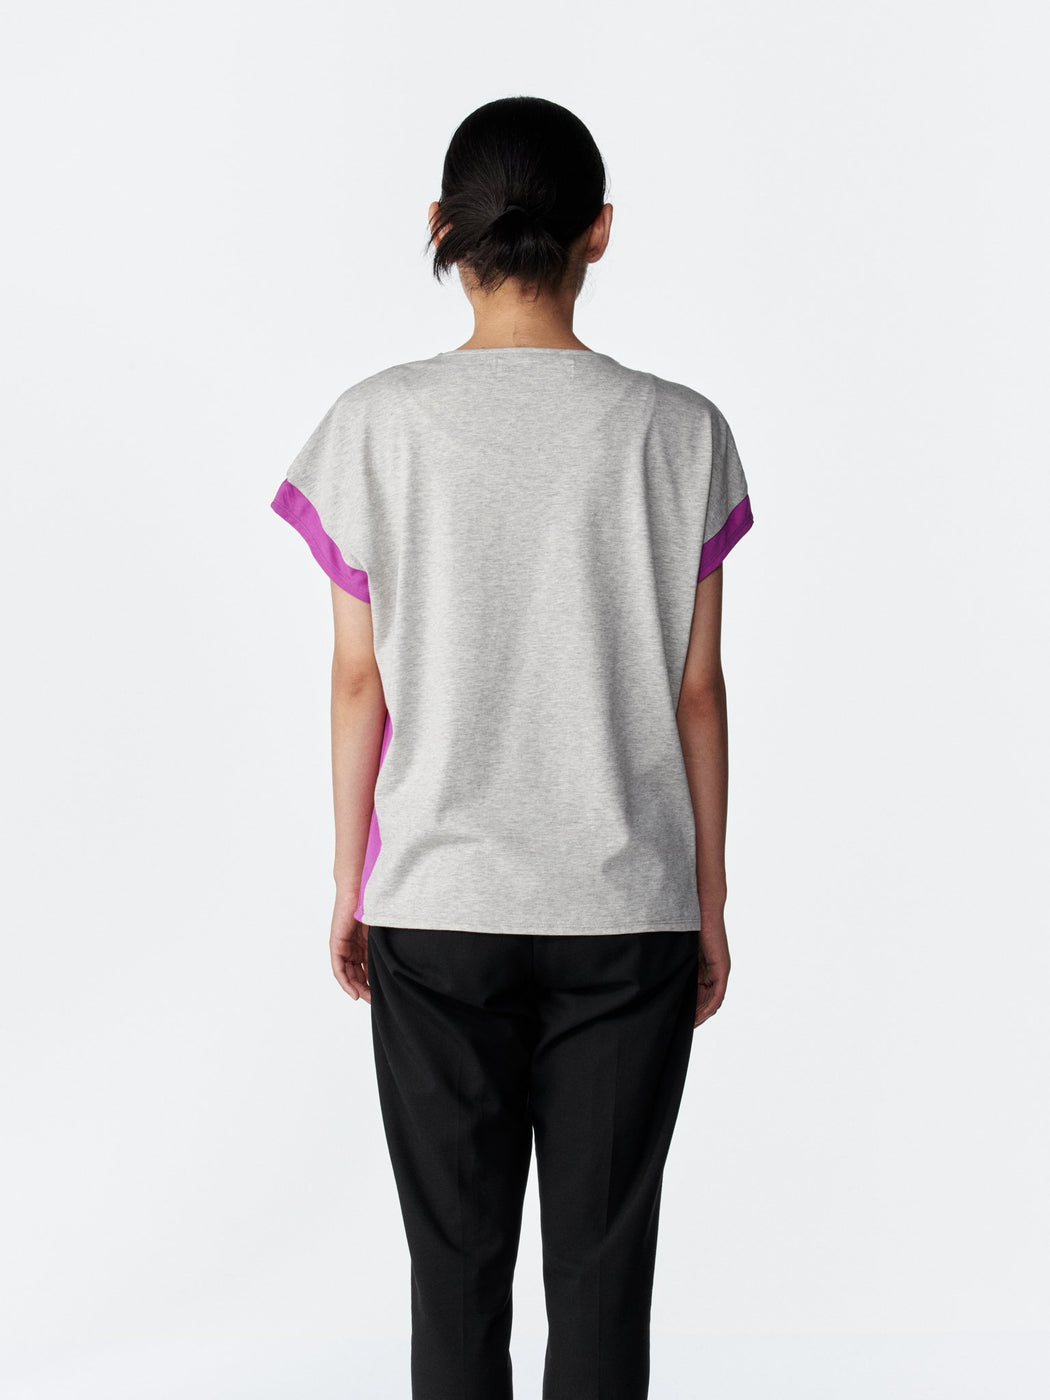 ALOYE Shirt Fabrics Women's Capped Sleeve T-shirt Heather Gray-Purple